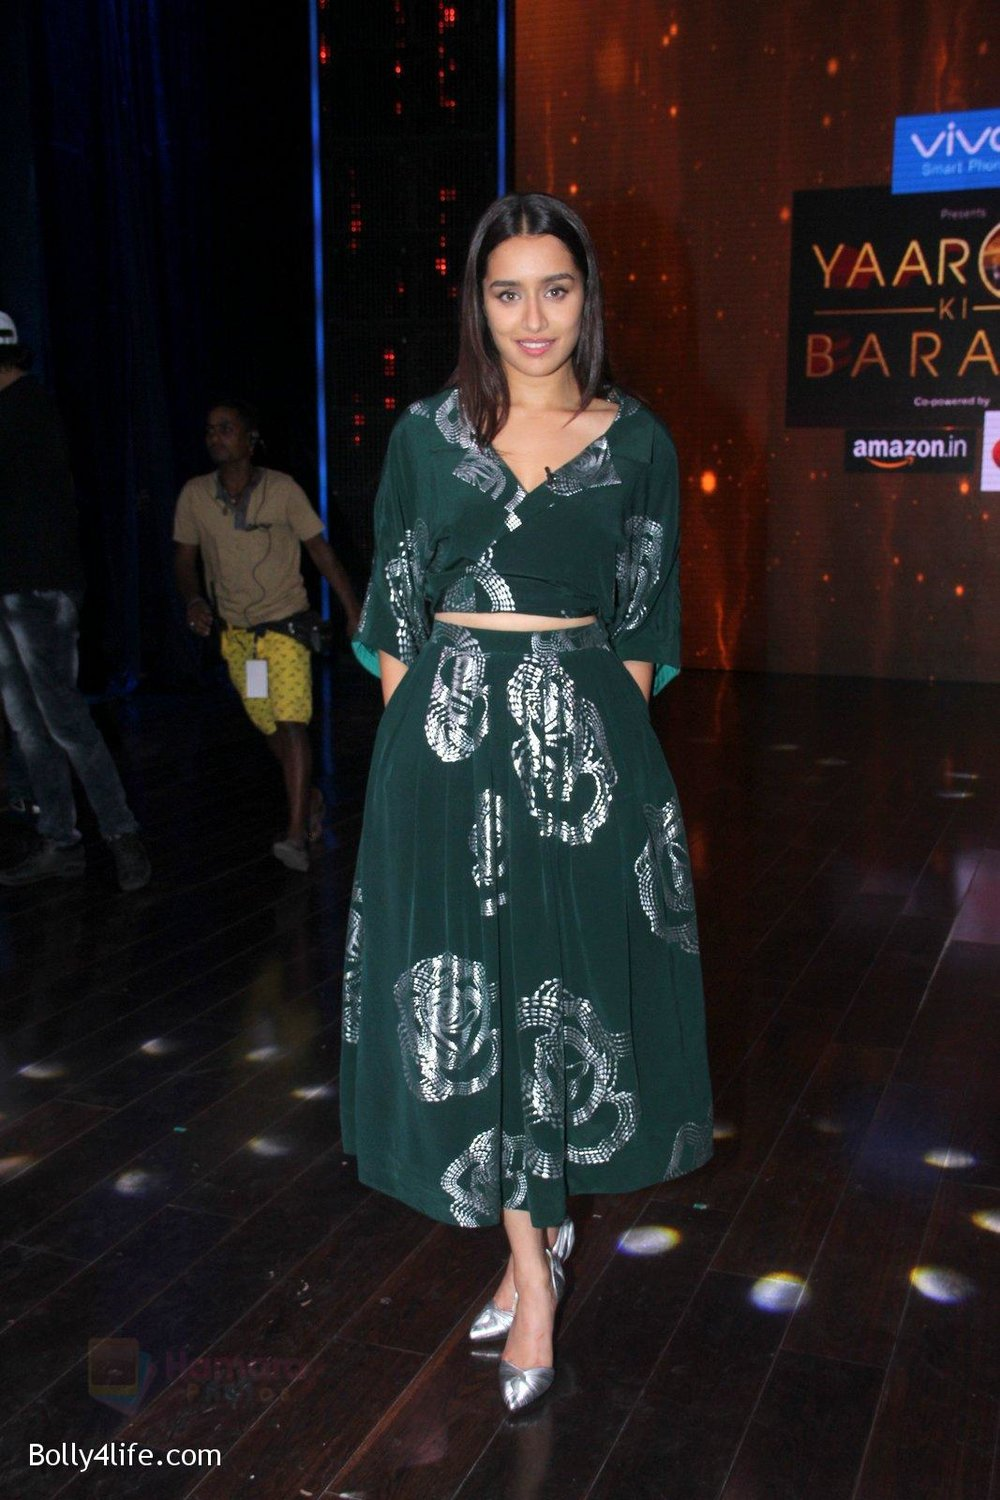 Shraddha-Kapoor-promote-Rock-On-2-on-the-sets-of-Yaaron-Ki-Baraat-Show-on-Zee-Tv-on-23rd-Oct-2016-77.jpg